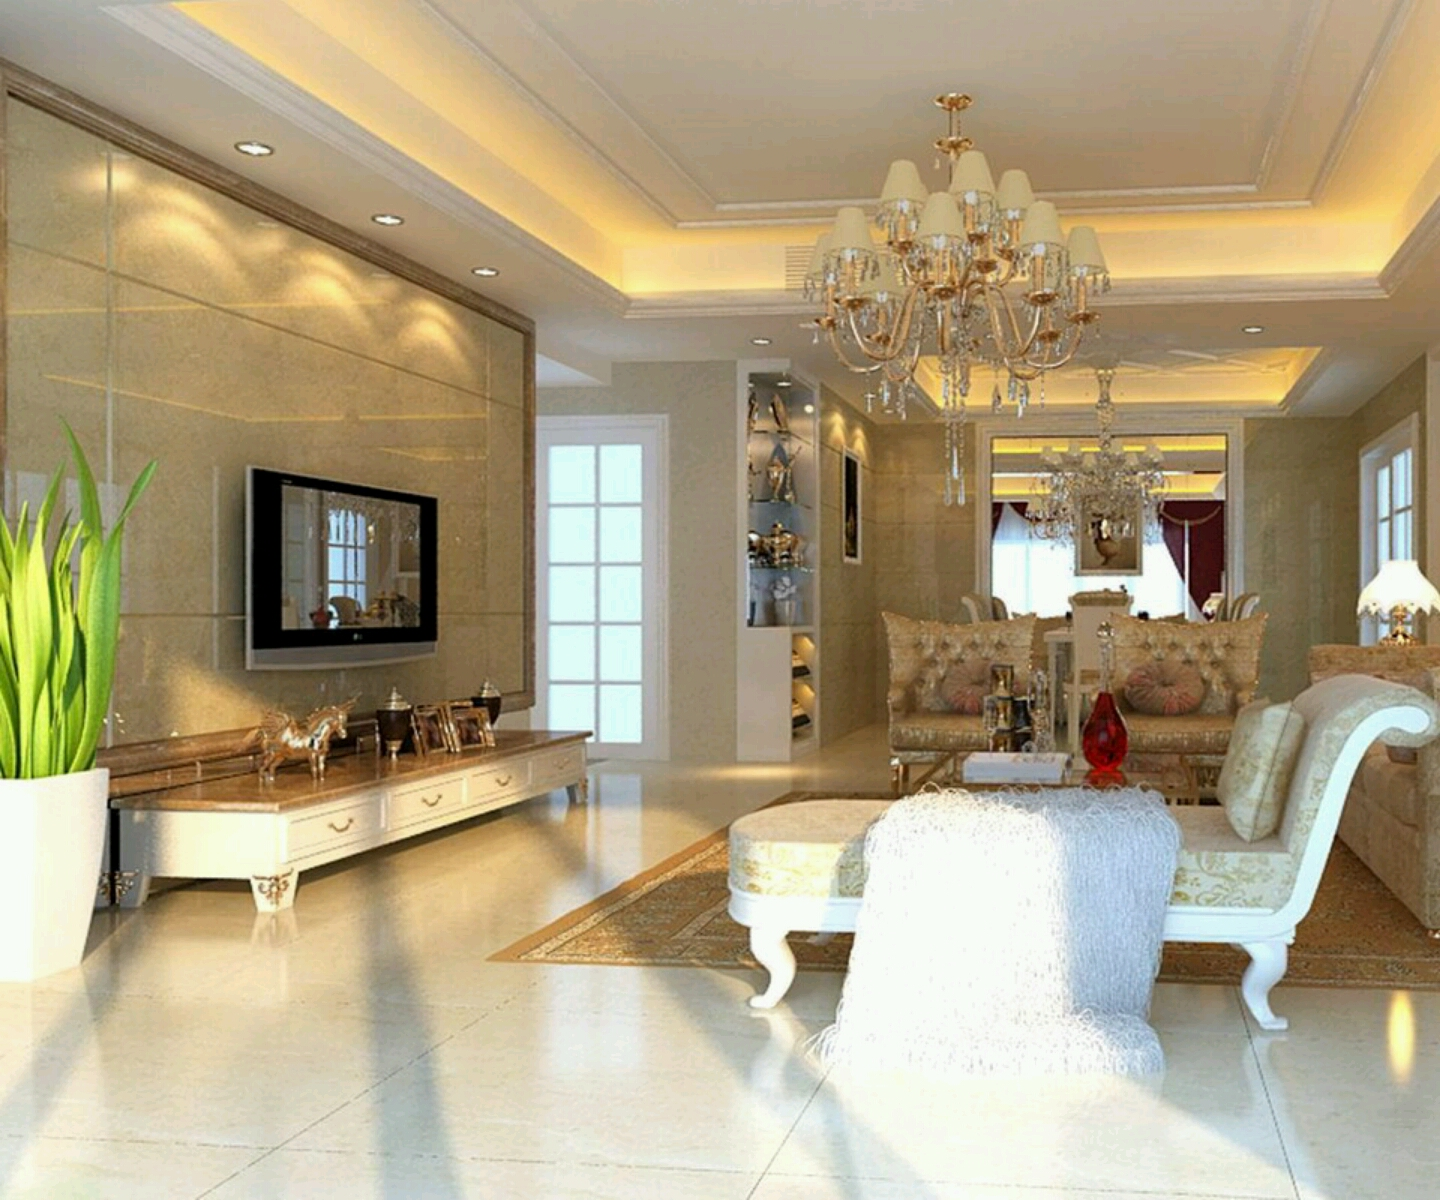 Home Interior Design Ideas For Small Living Room: Home Decor 2012: Luxury Homes Interior Decoration Living